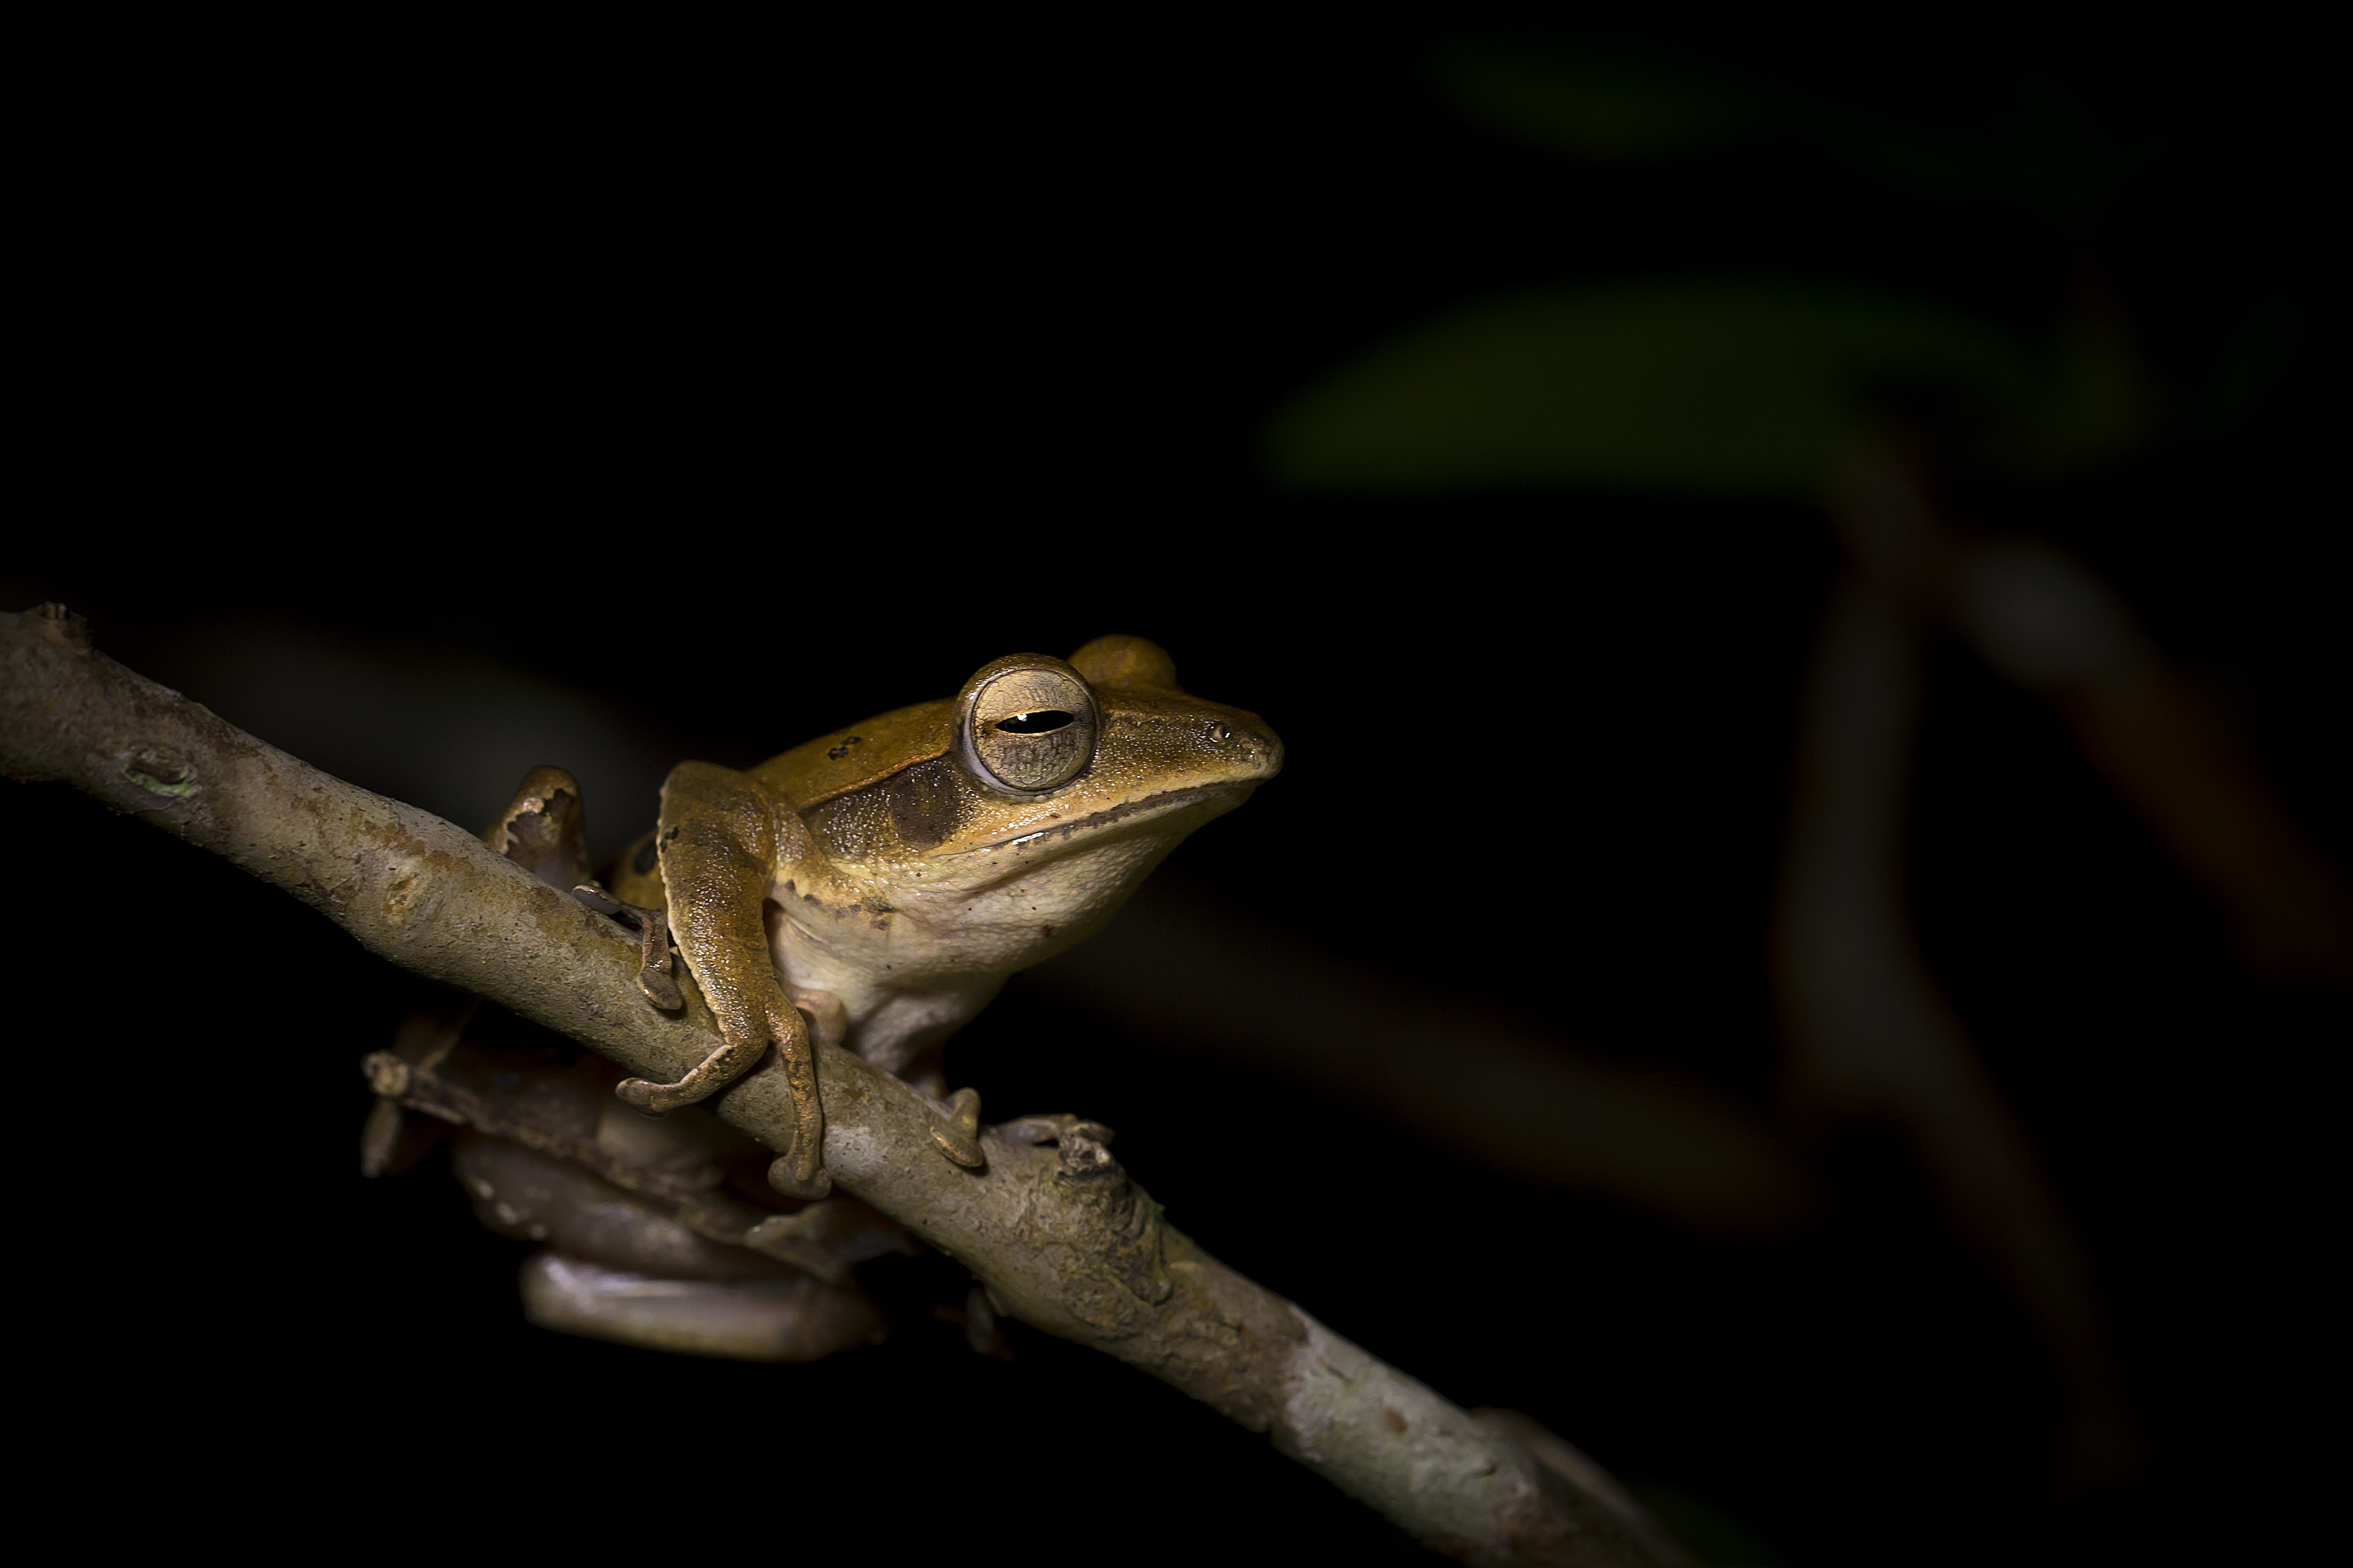 Malabar pit vipers target tree frogs such as western tree frogs, when they congregate near ponds to mate.  